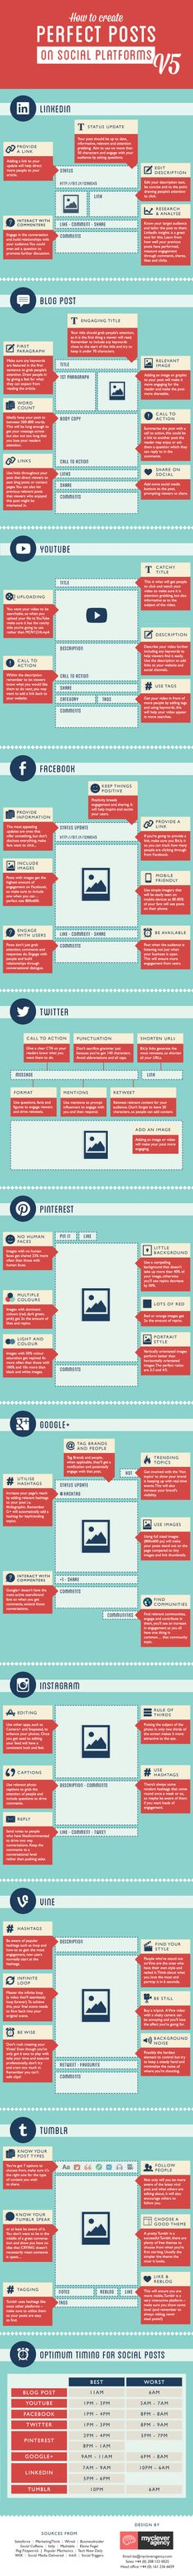 A Cheat-Sheet for Creating the Best Social Media Campaigns EVER!